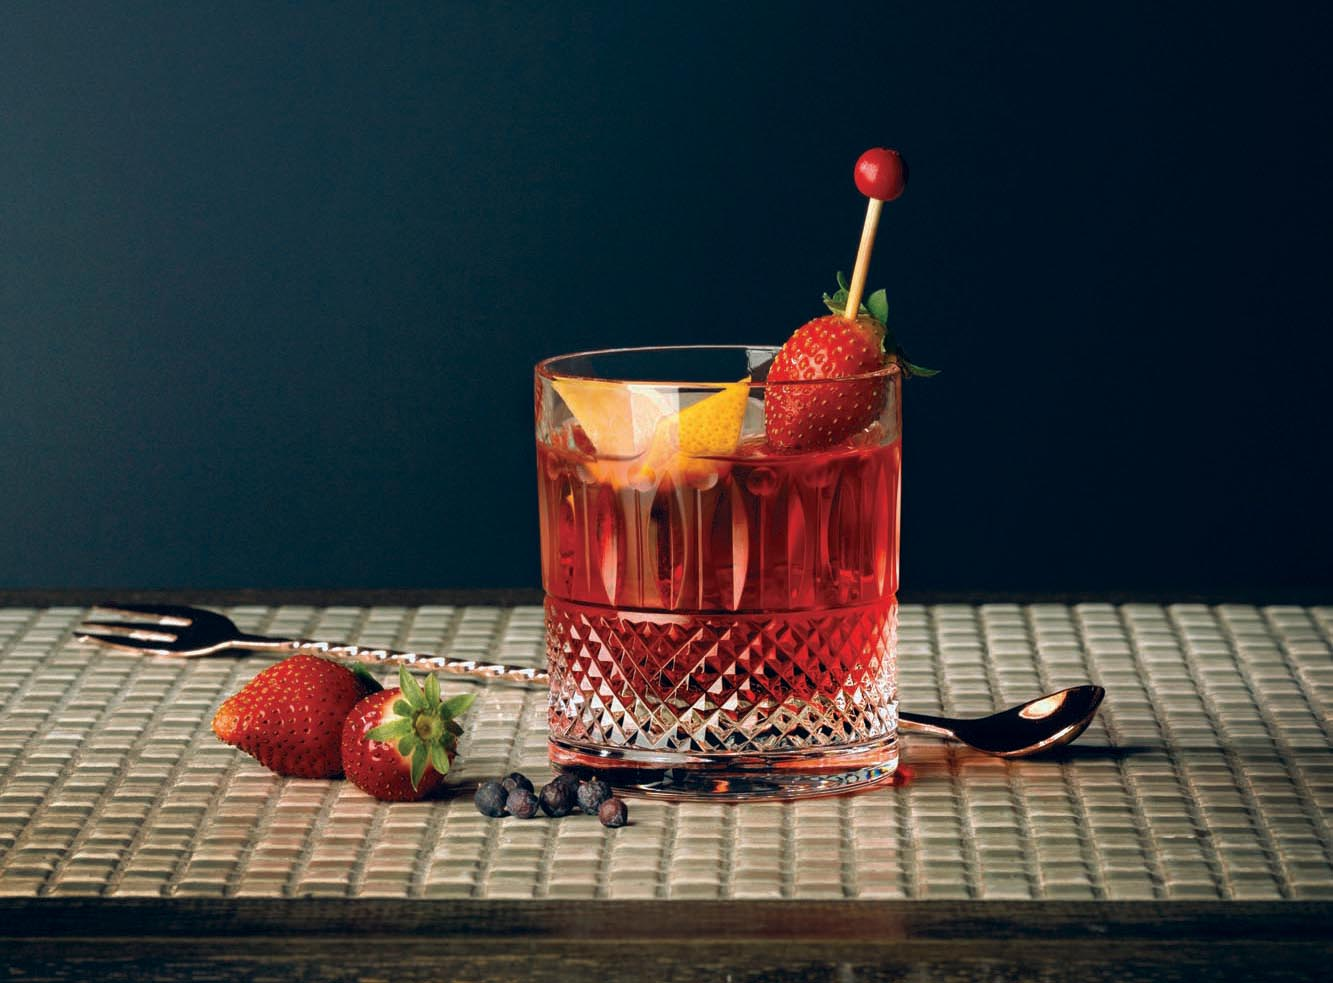 In the Kula Negroni, Julie Reiner infuses strawberries into Campari and pairs the mixture with London Dry gin and vermouth.